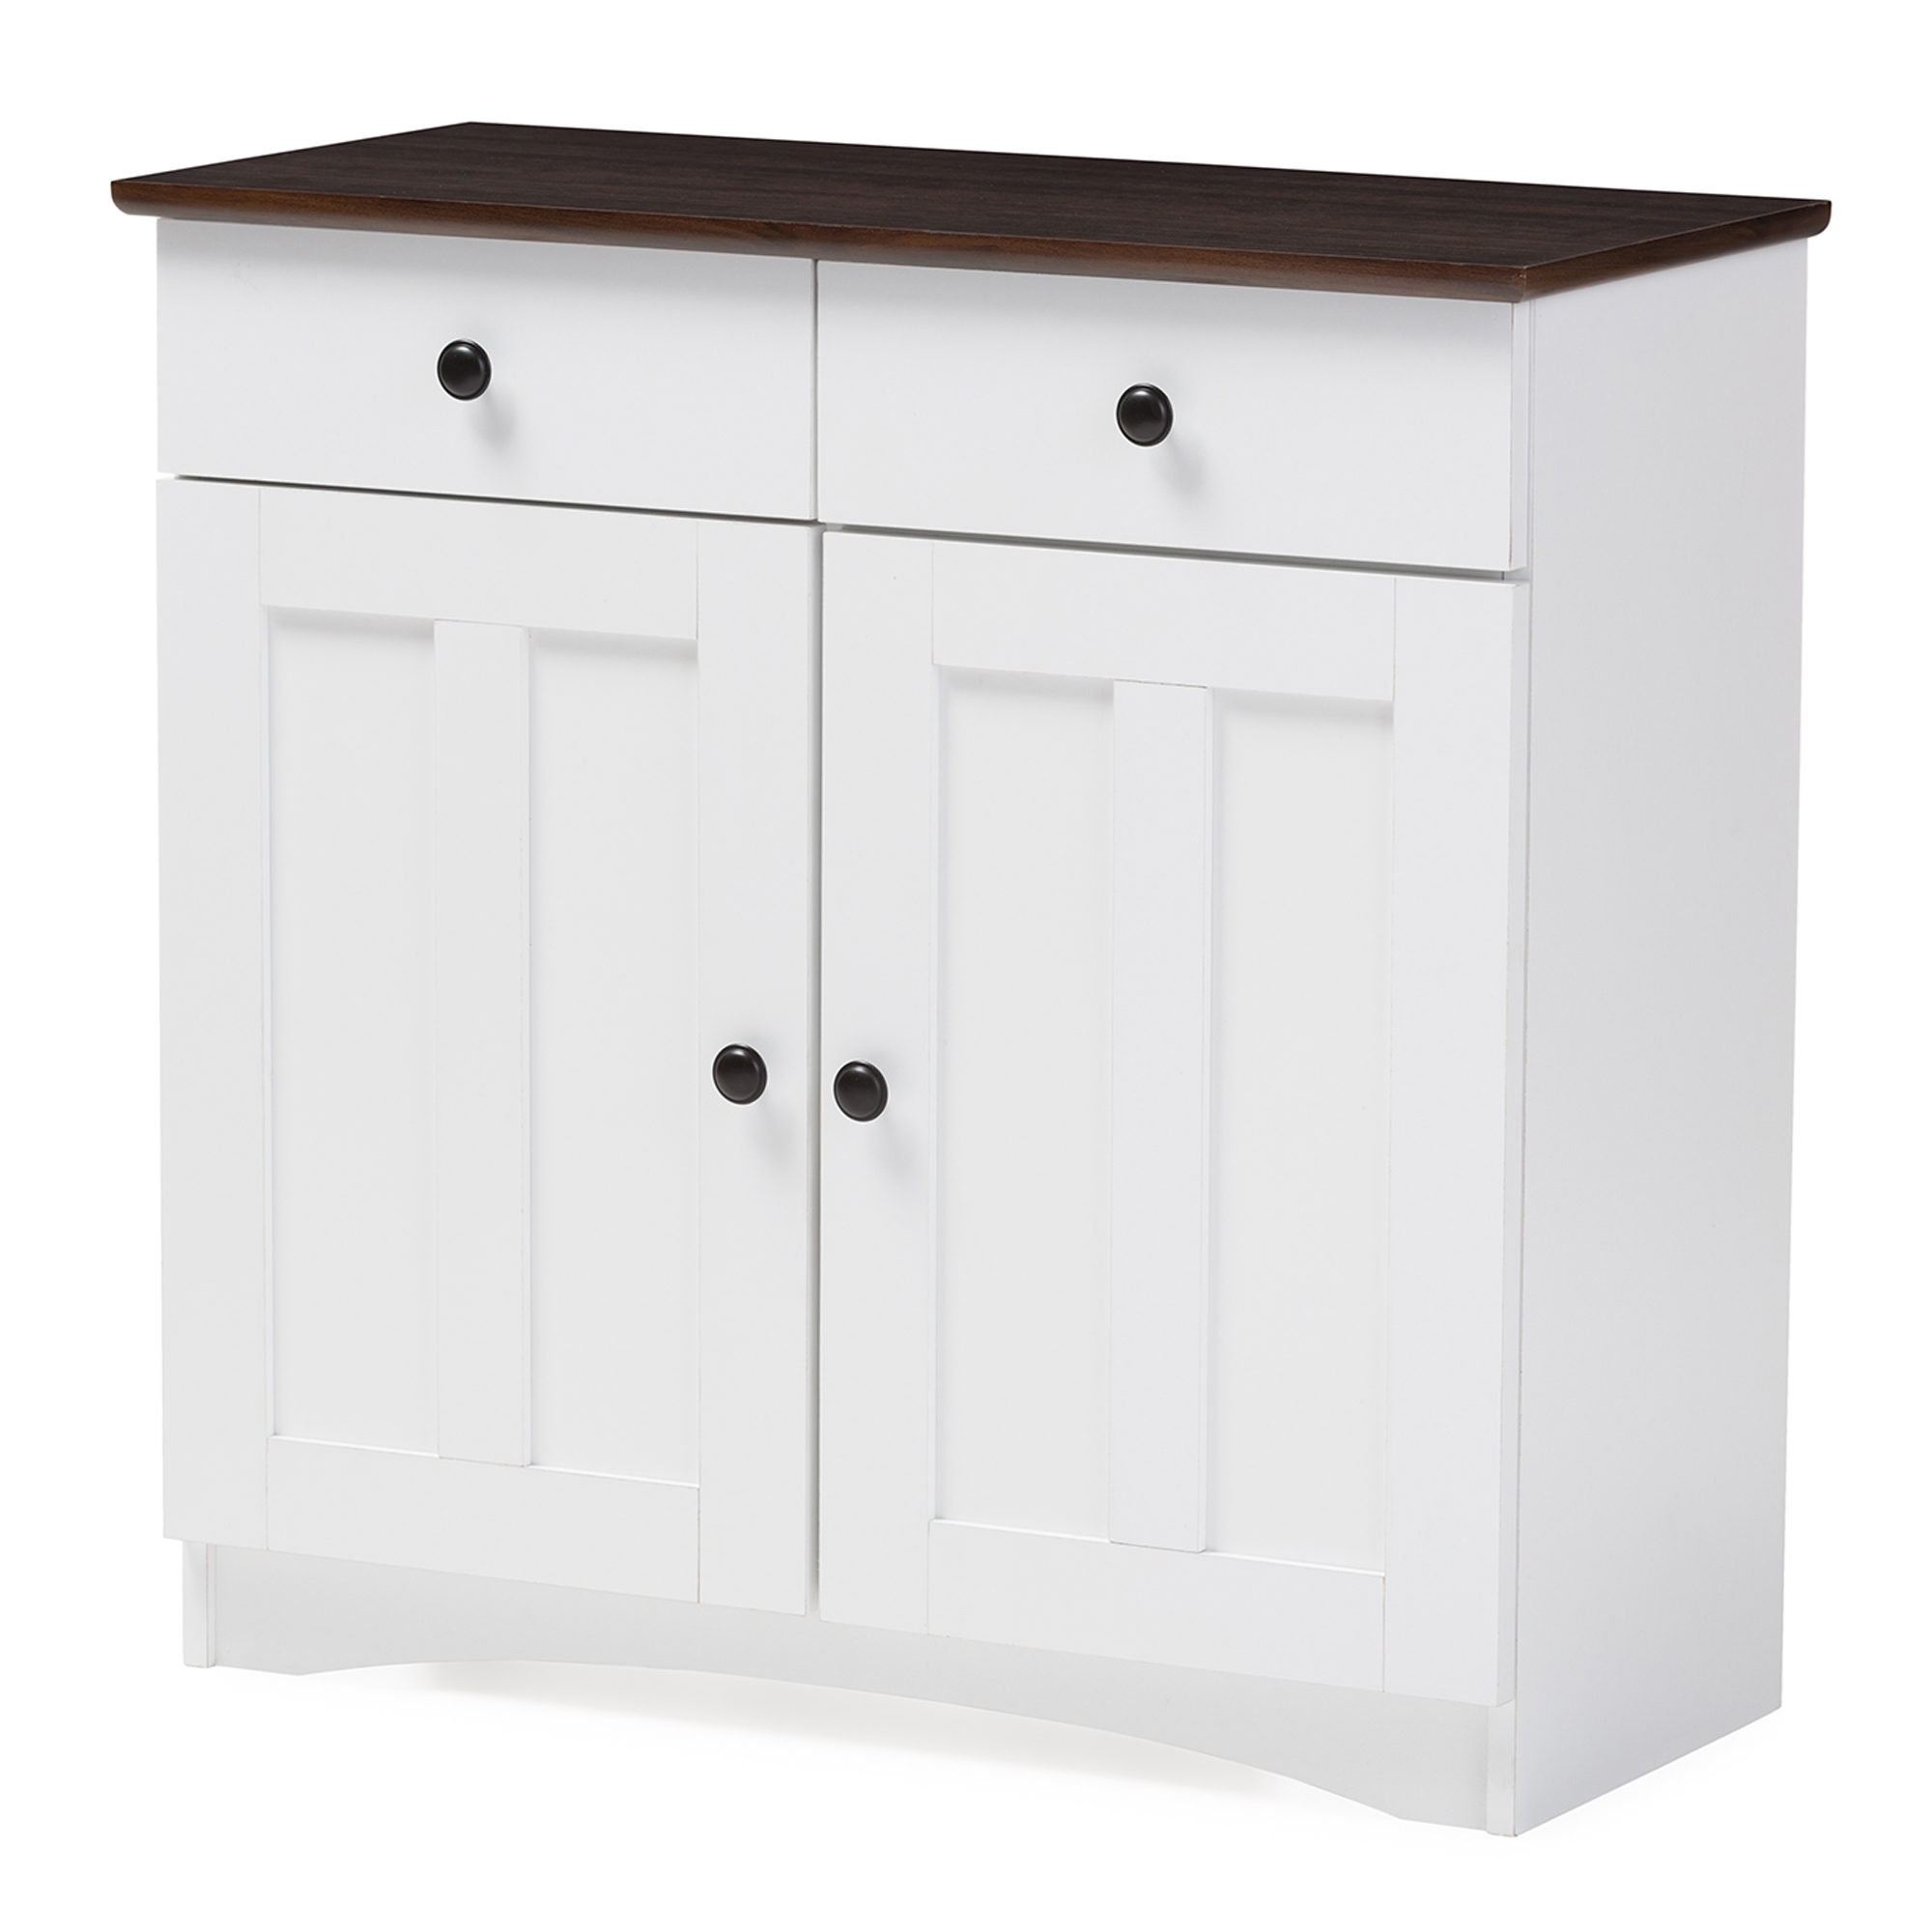 Baxton Studio Lauren Modern And Contemporary Two Tone White And Dark Brown  Buffet Kitchen Cabinet With Two Doors And Two Drawers